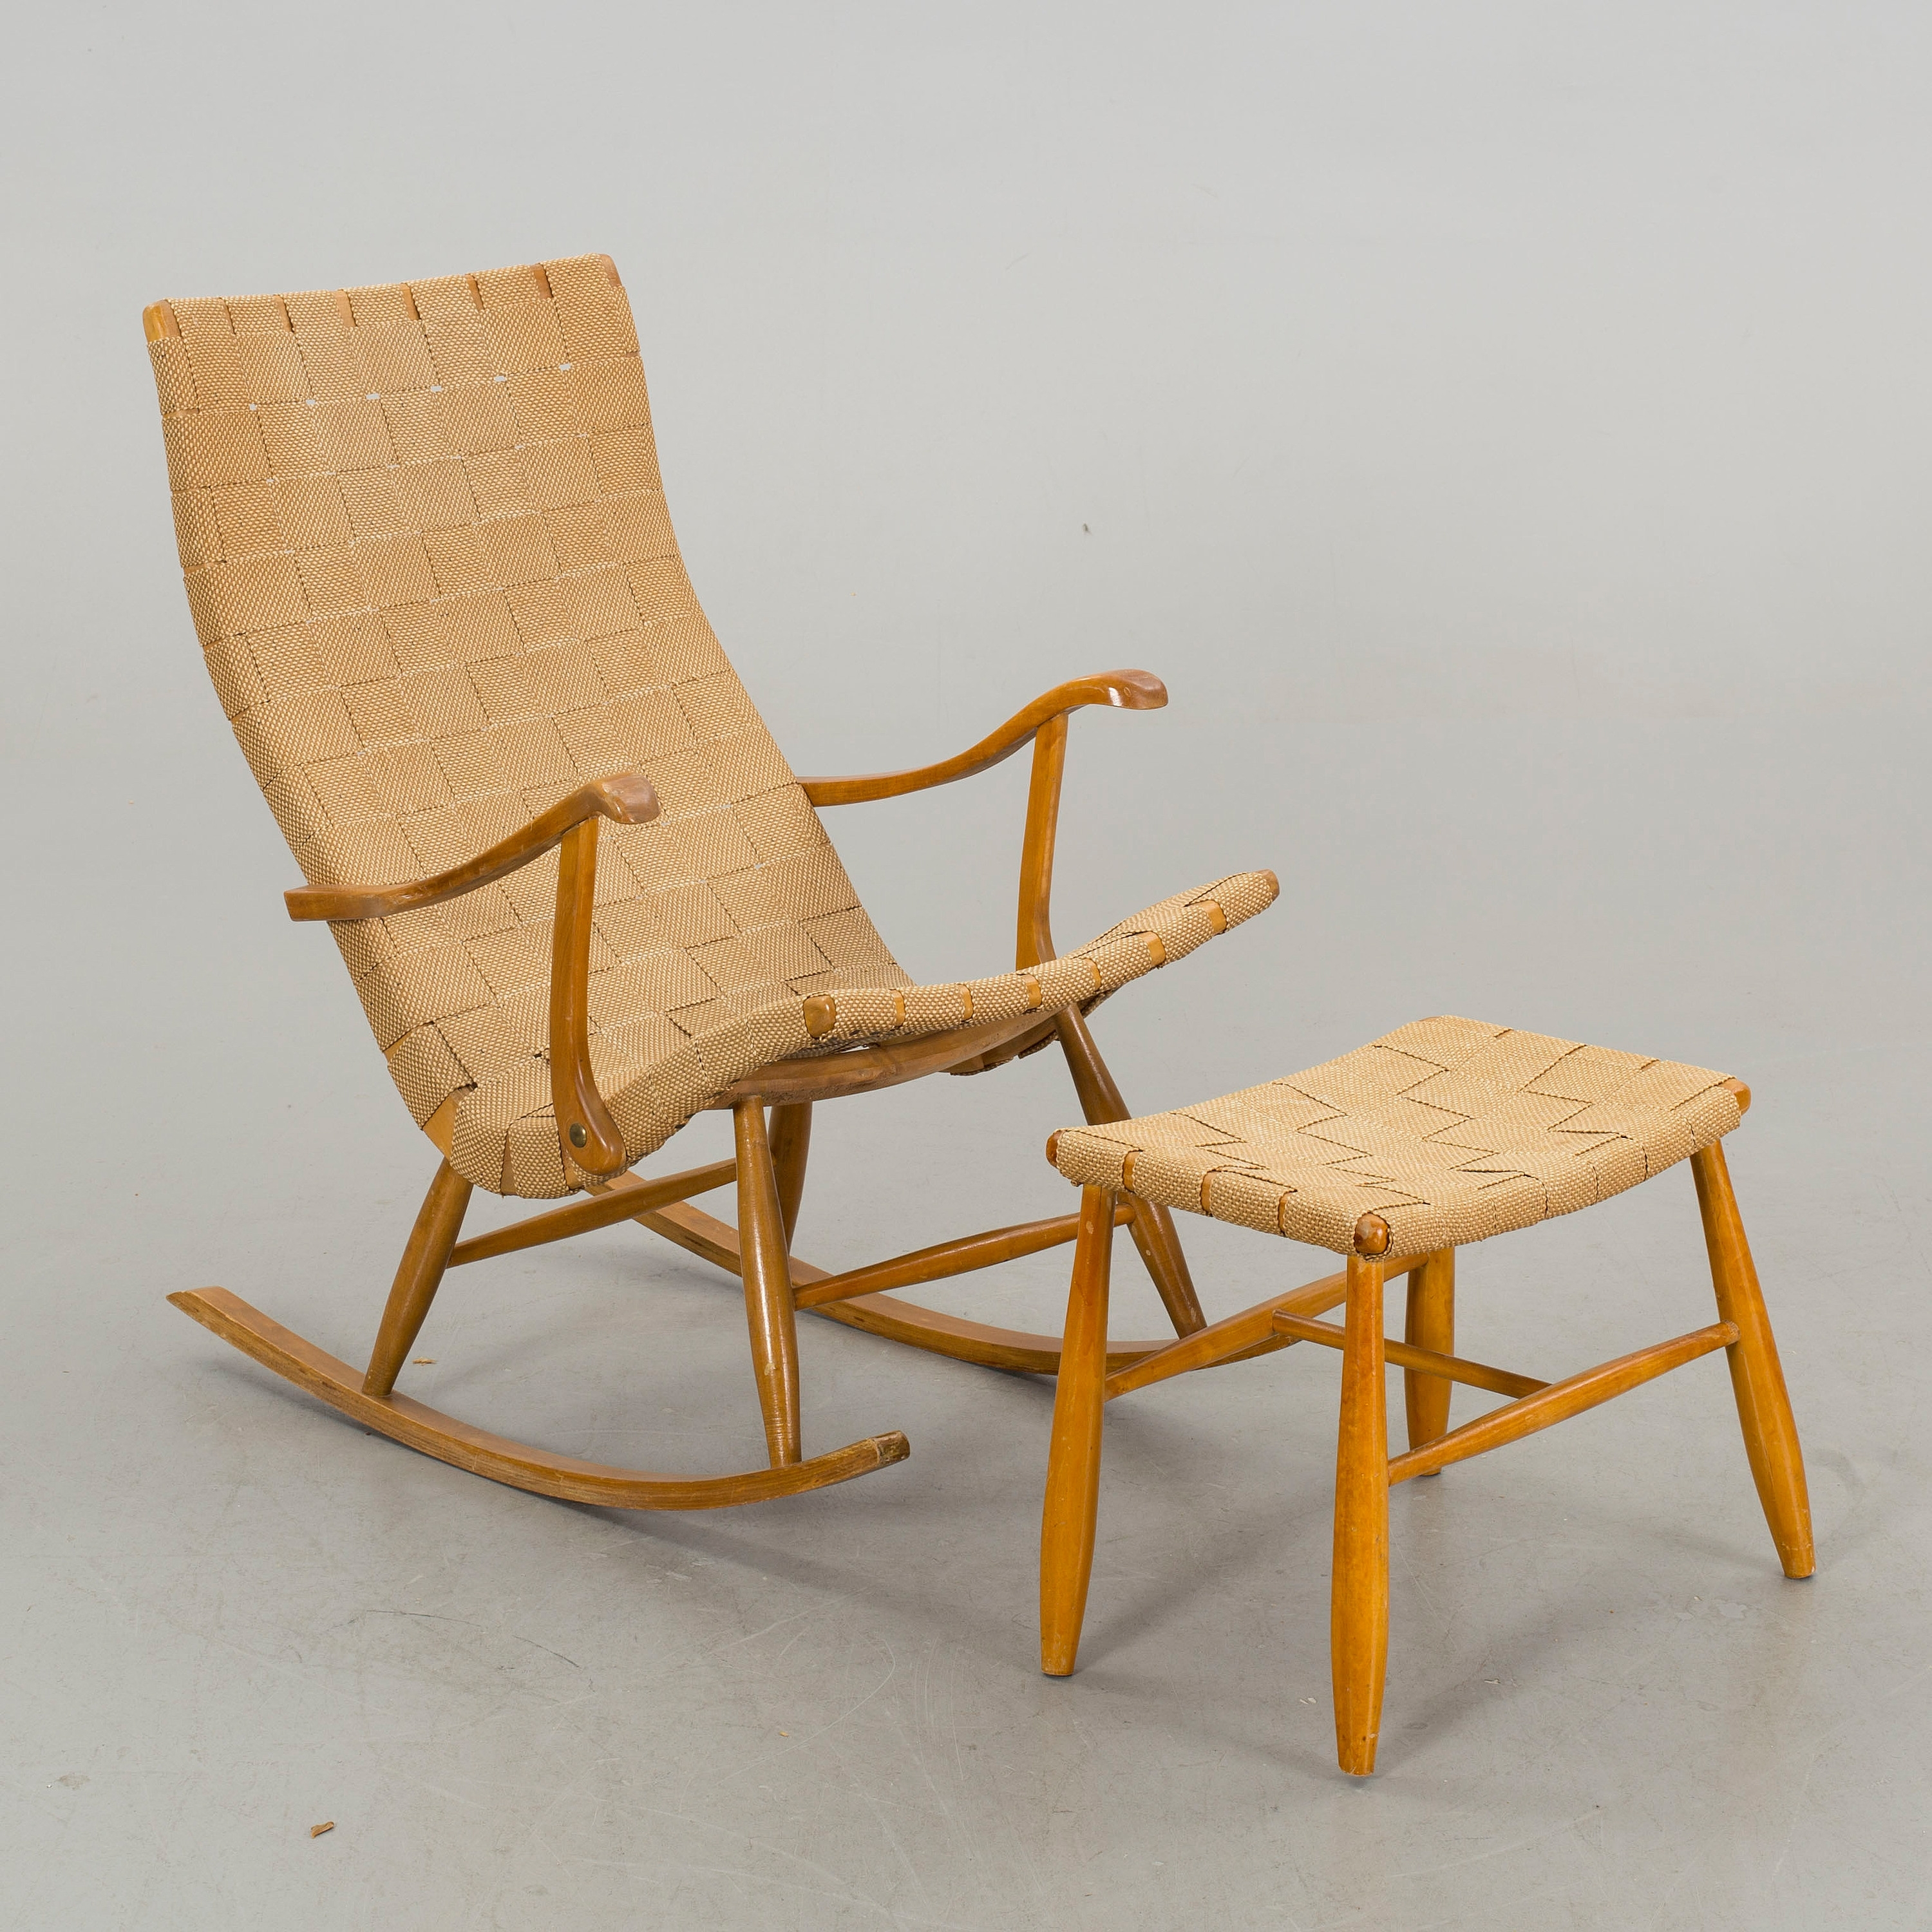 Rocking Chairs With Footstool In Preferred A Rocking Chair With Footstool, 1940/50S, – Bukowskis (View 13 of 20)